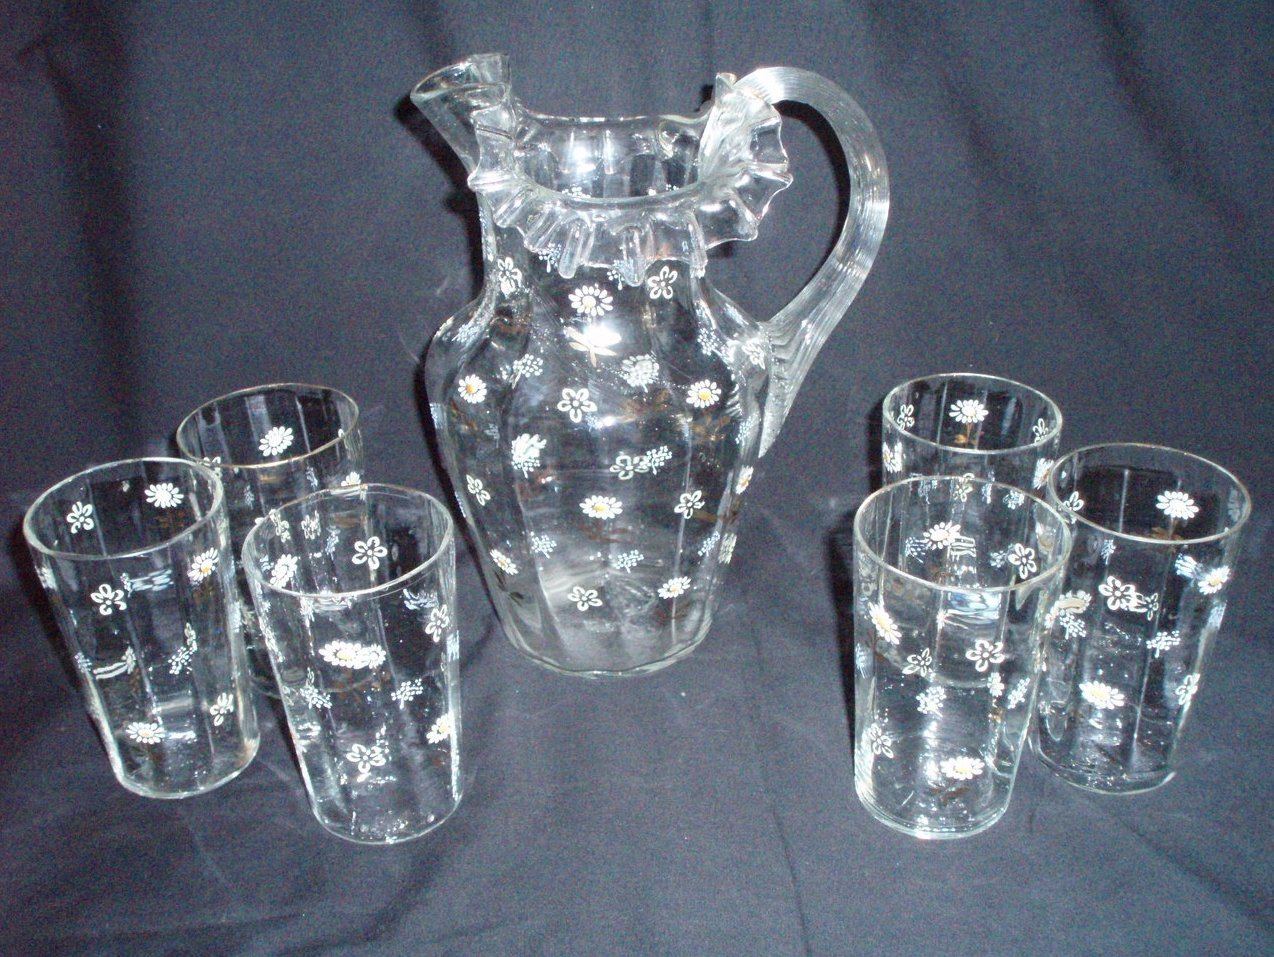 Antique English Pitcher 6 glasses hand painted daisies